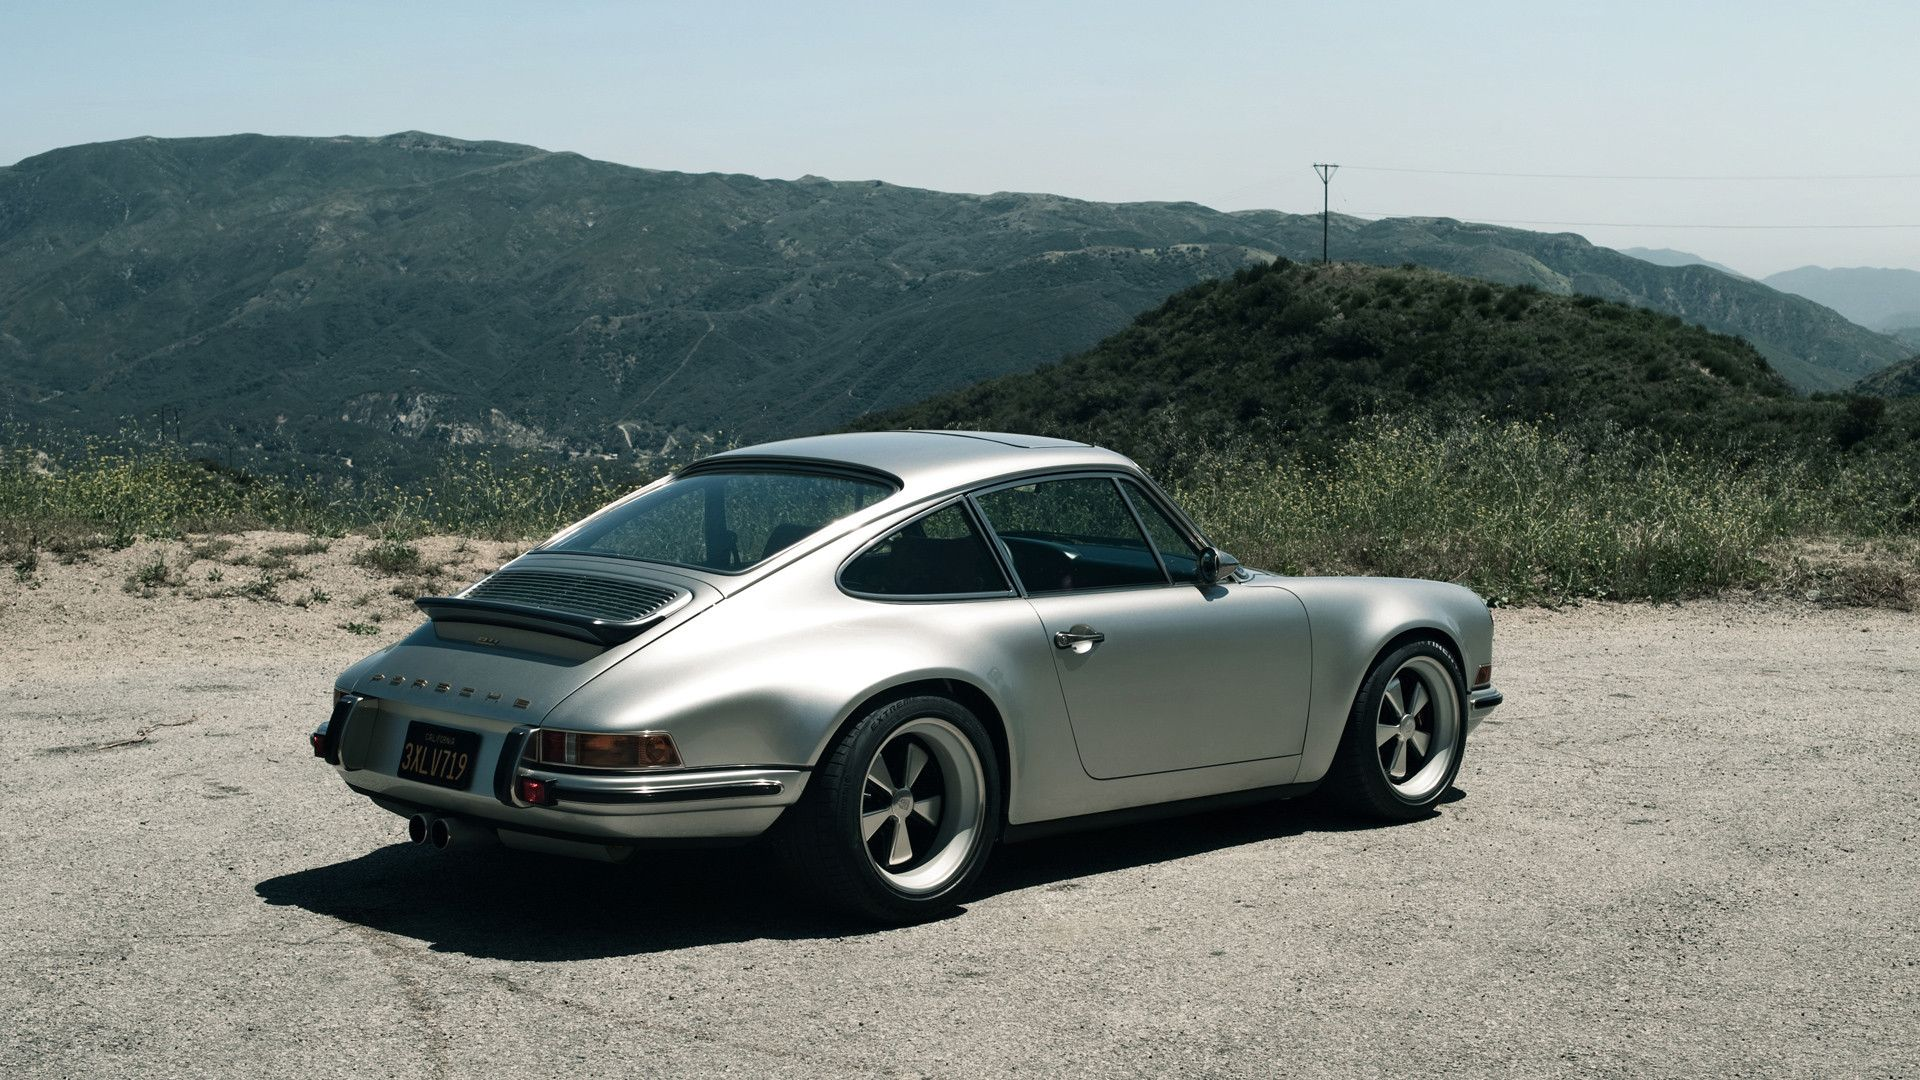 1080 Car Wallpapers Porsche 911 Classic Porsche 911 Porsche